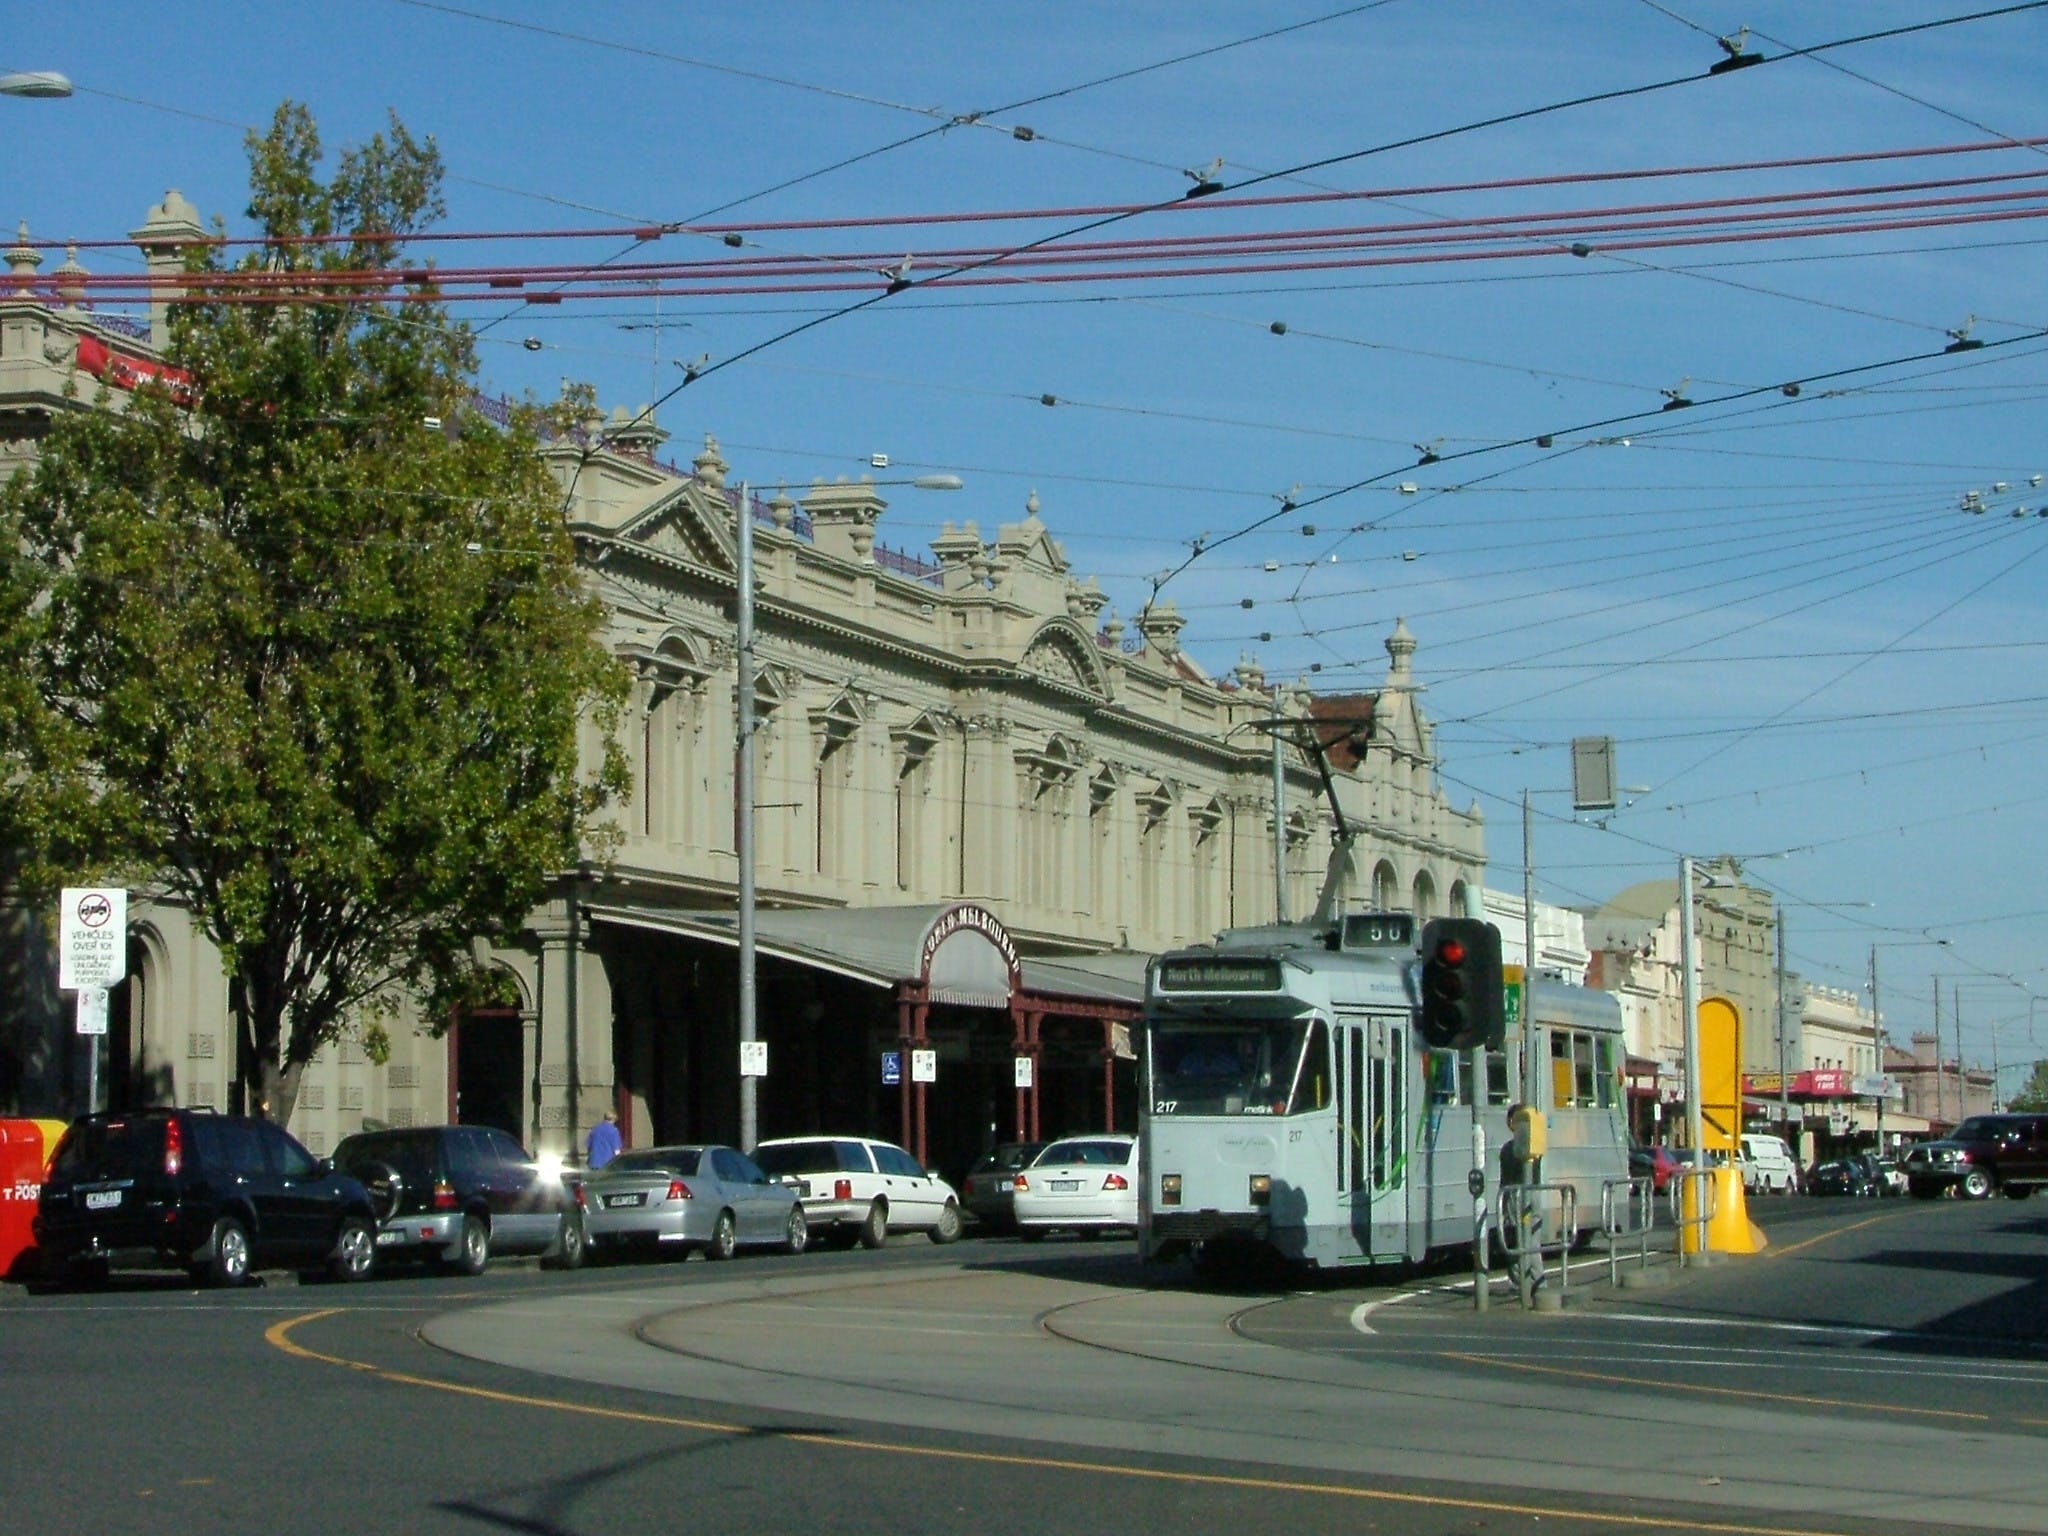 57Tram - Errol Street North Melbourne 2min walk